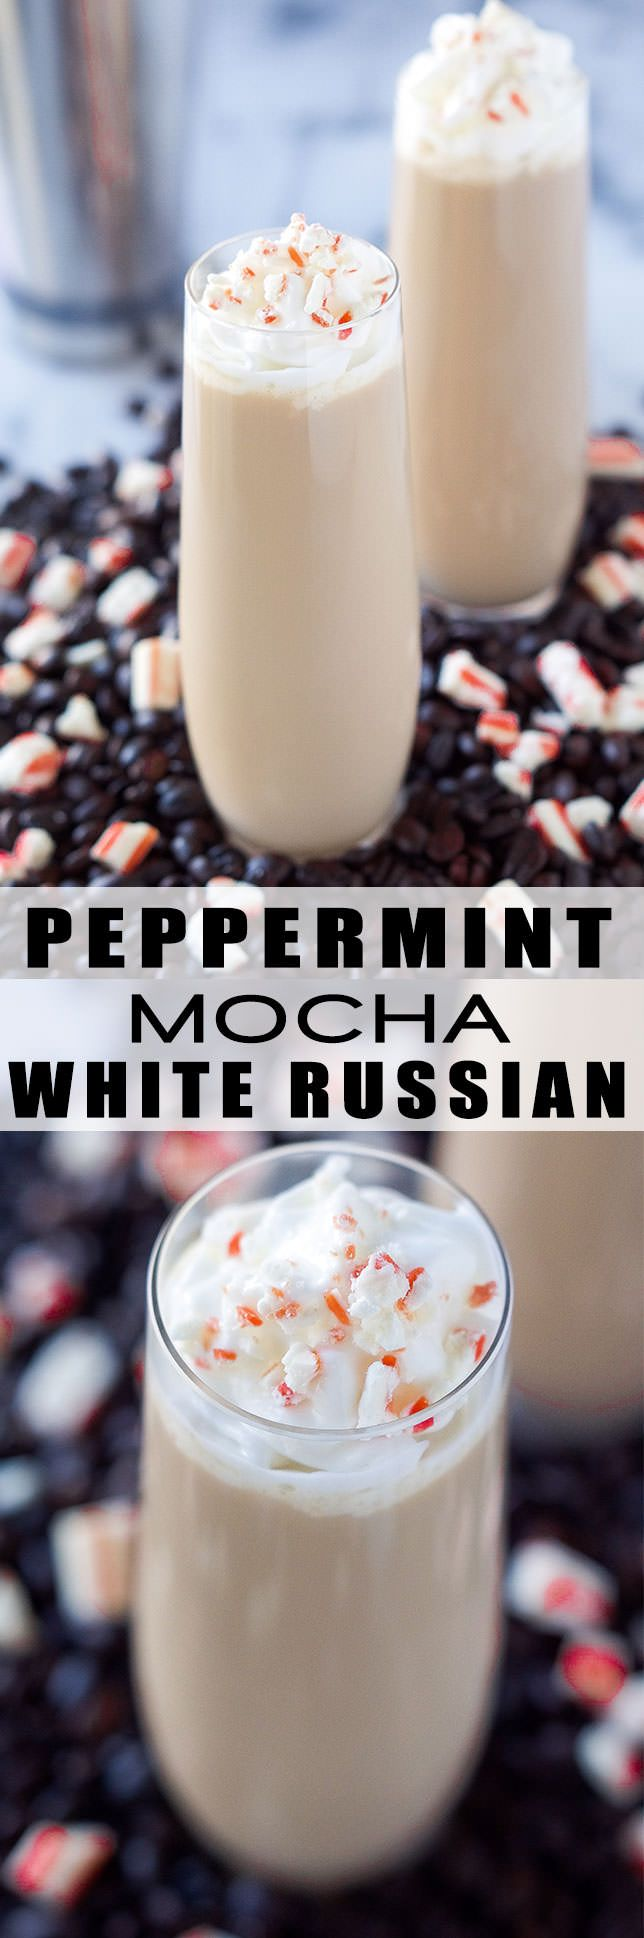 This Peppermint Mocha White Russian is a festive cocktail! The classic drink with a peppermint and chocolate twist!